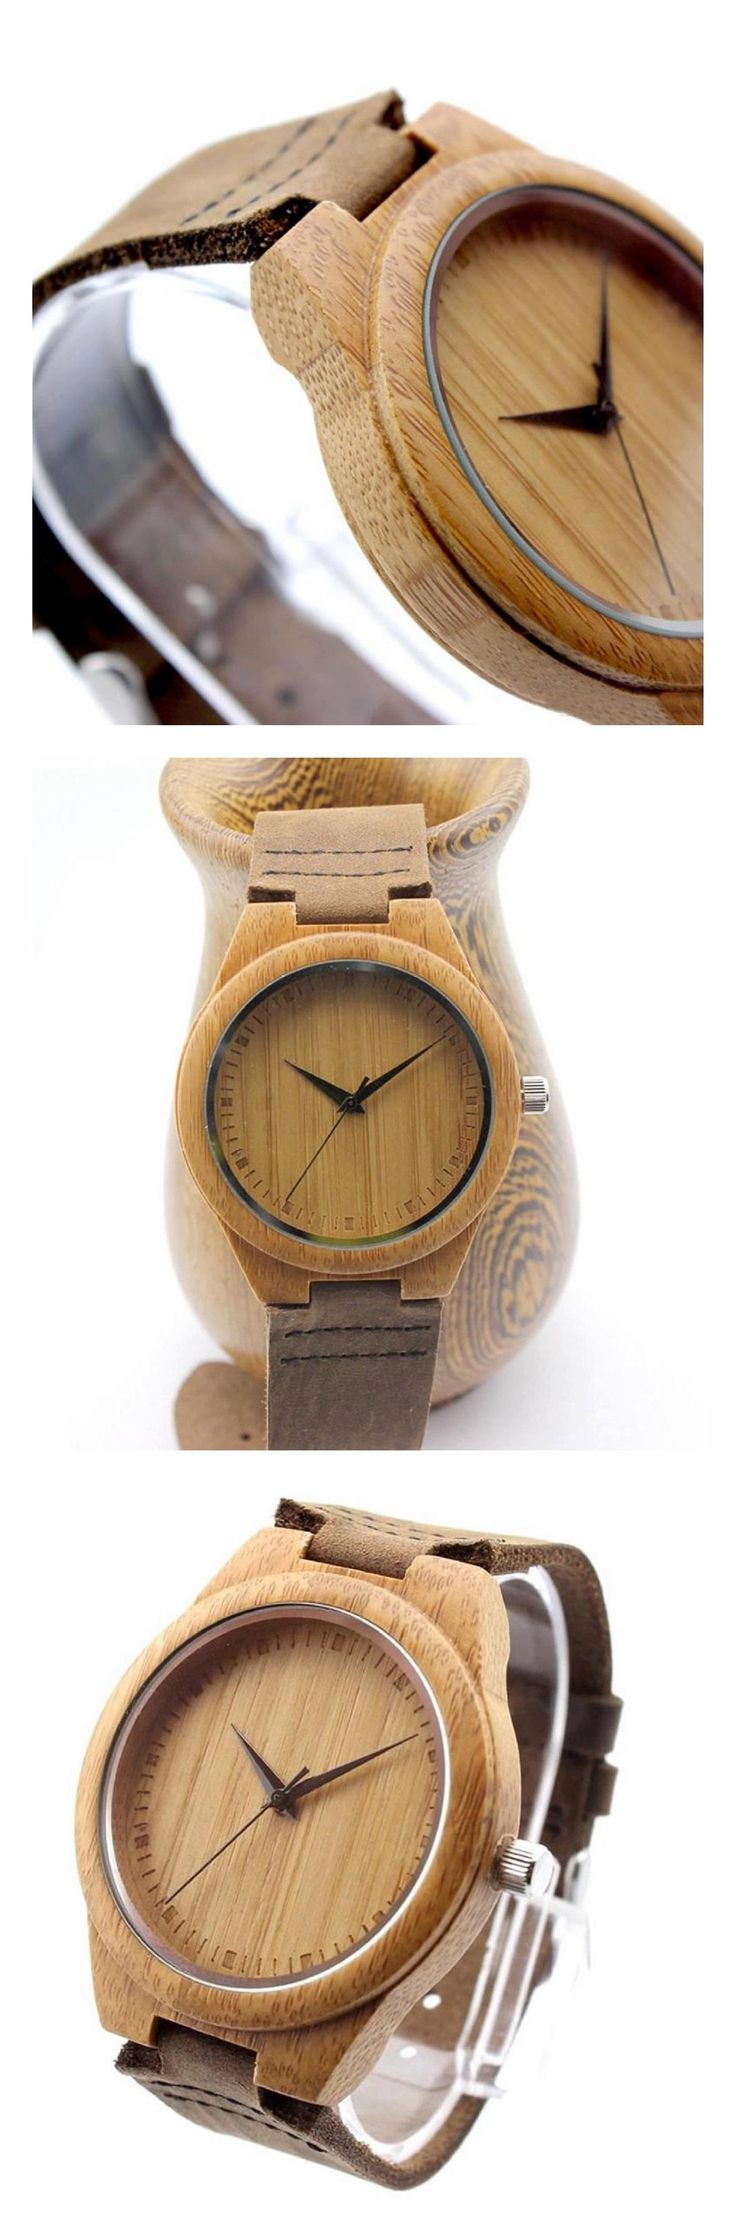 Bamboo, Bamboo and Bamboo: VOSICAR Retro Leather Fashion Bamboo Wooden Watch. Lightweight and comfortable on the wrist, Healthy and comfortable (Non-toxic Hypo-allergenic), Fashion design watch wood with genuine leather strap. #VOSICAR #KhaValeri http://www.pinterest.com/KhaValeri/    kha_amz_VOSbamboo1405_v18